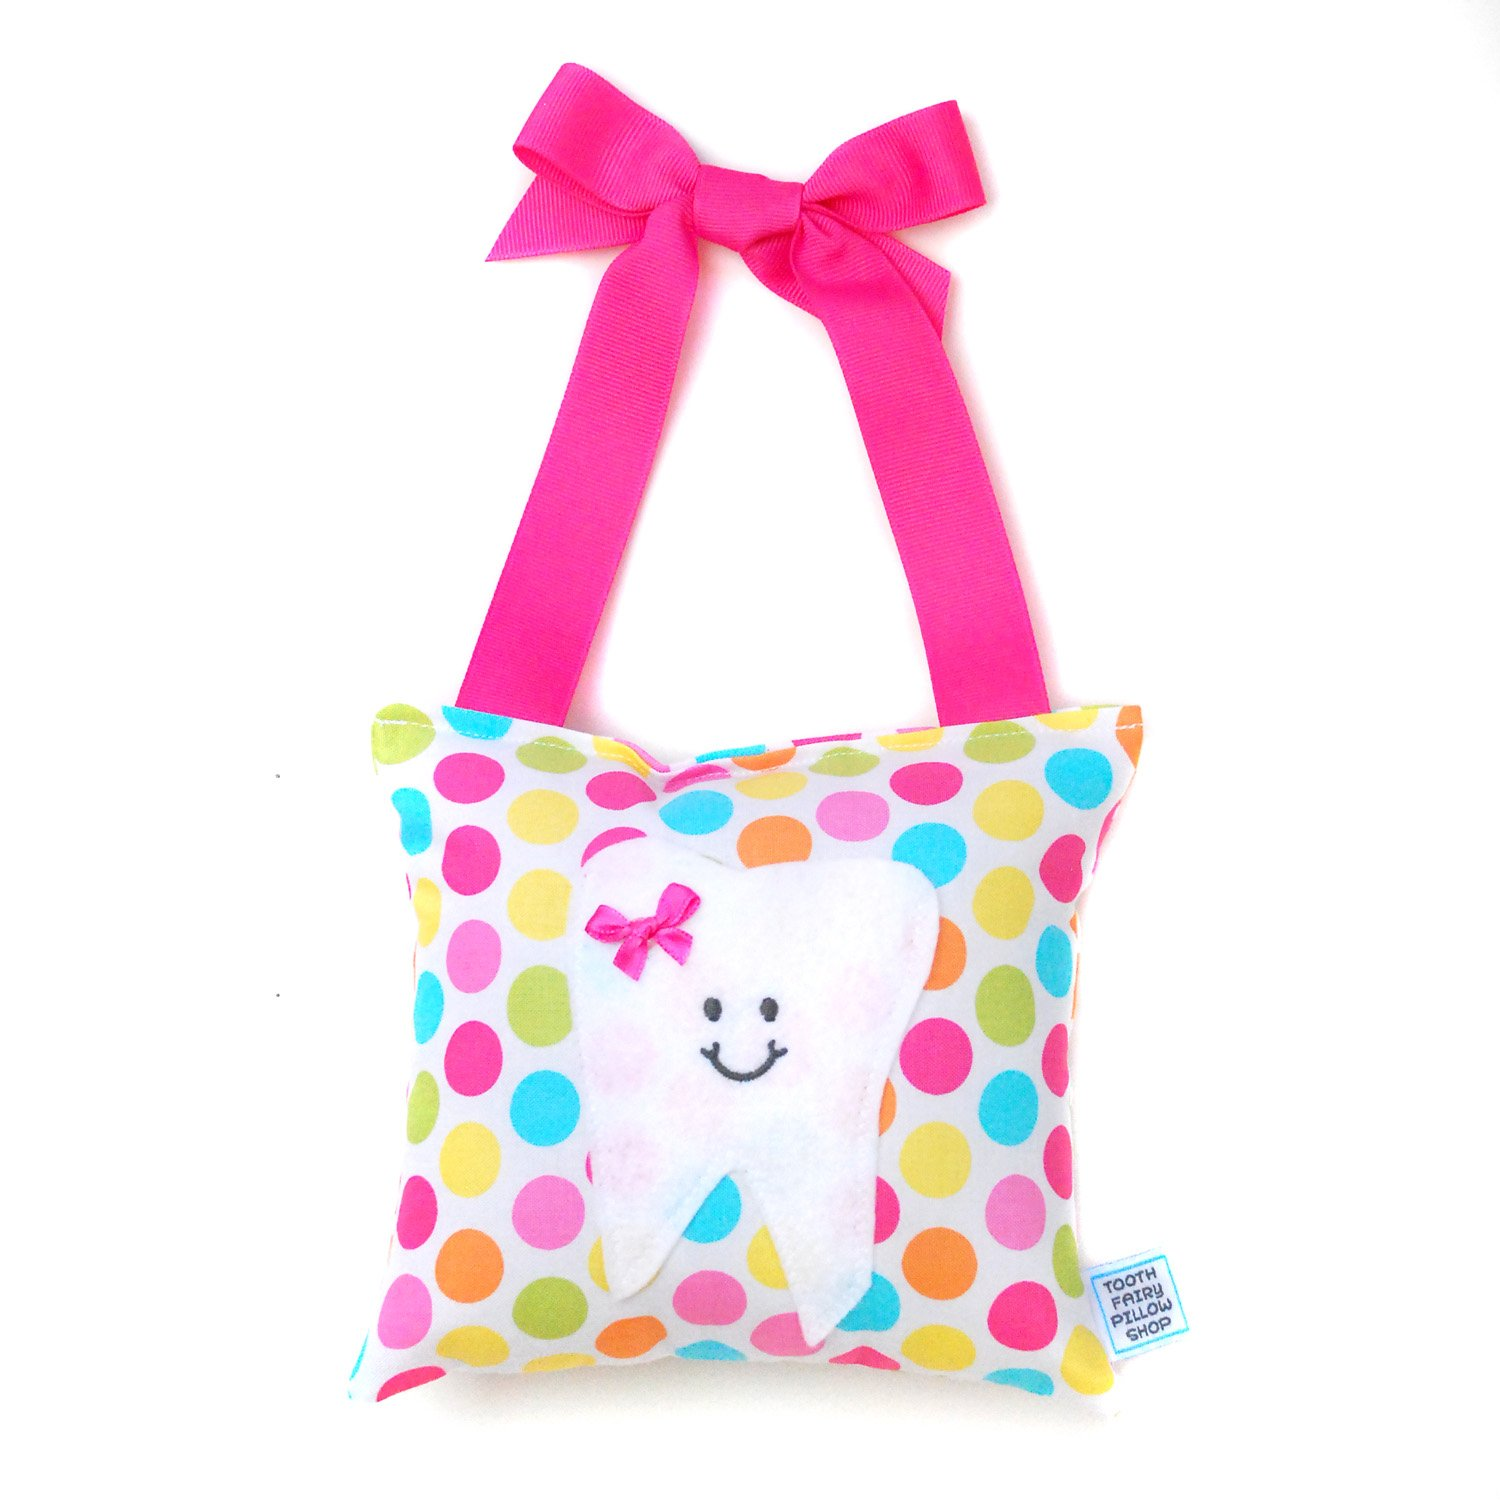 Girl's Tooth Fairy Pillow in Polka Dot Print Cotton Tooth Fairy Pillow Shop SYNCHKG056934